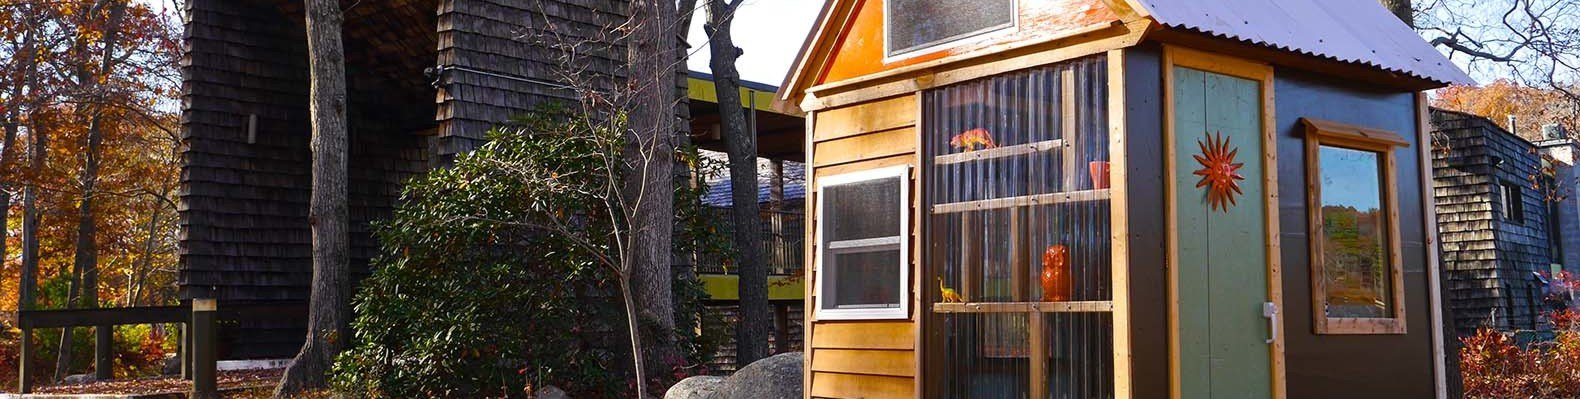 8 Year Old Cub Scouts Build Their Own Tiny House Studio To Raise Funds |  Inhabitat   Green Design, Innovation, Architecture, Green Building